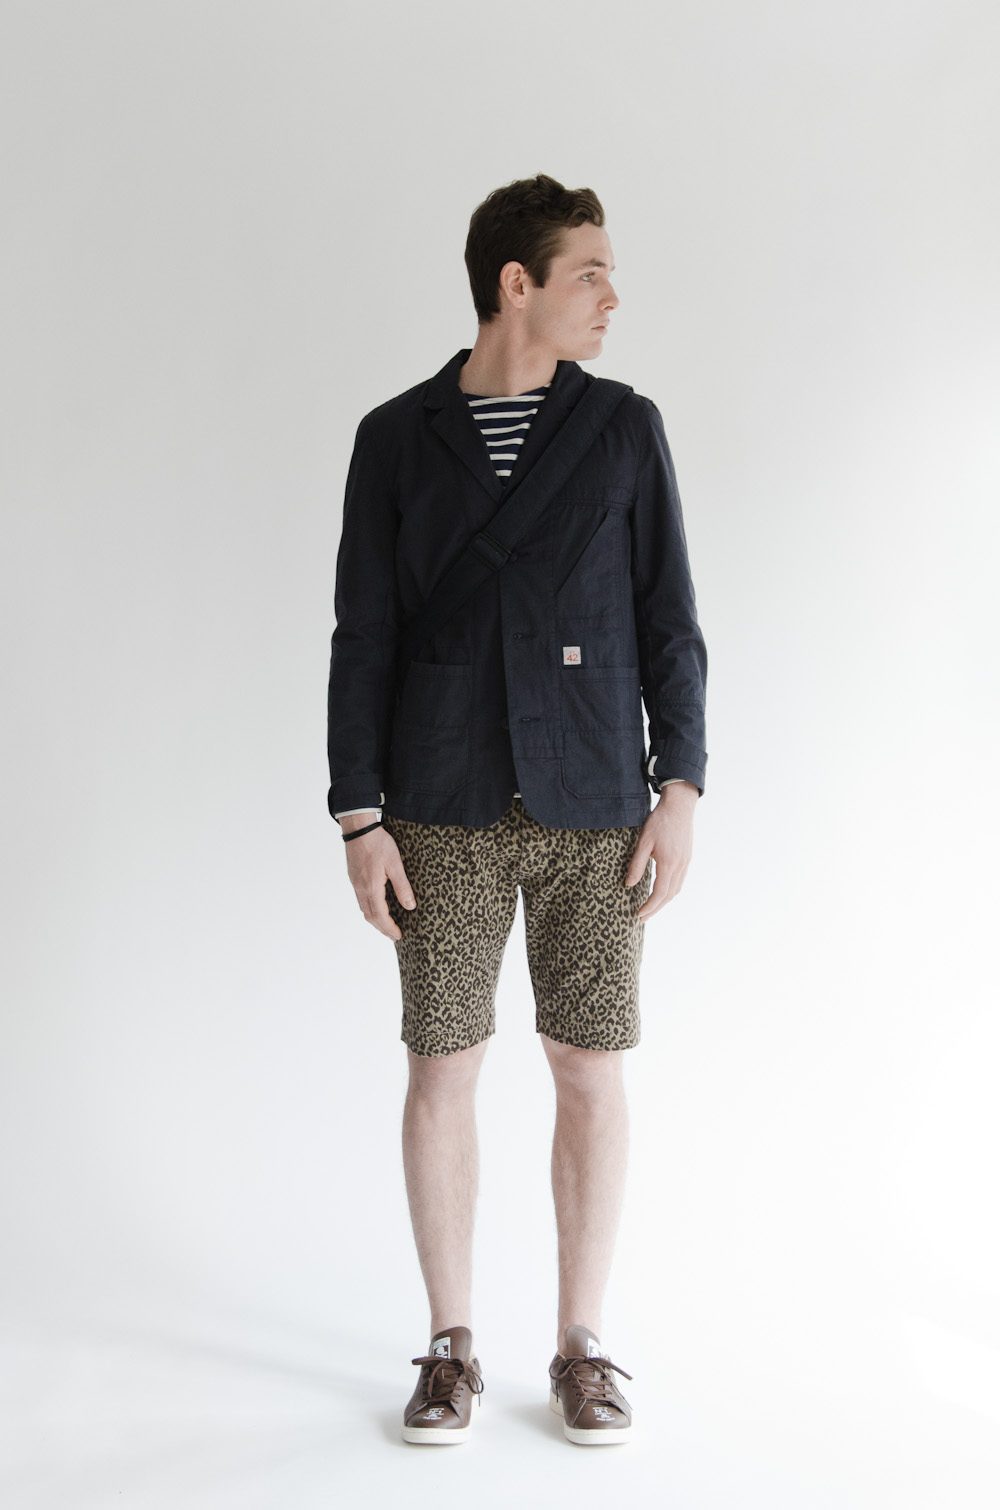 SP14-Lookbook.jpg